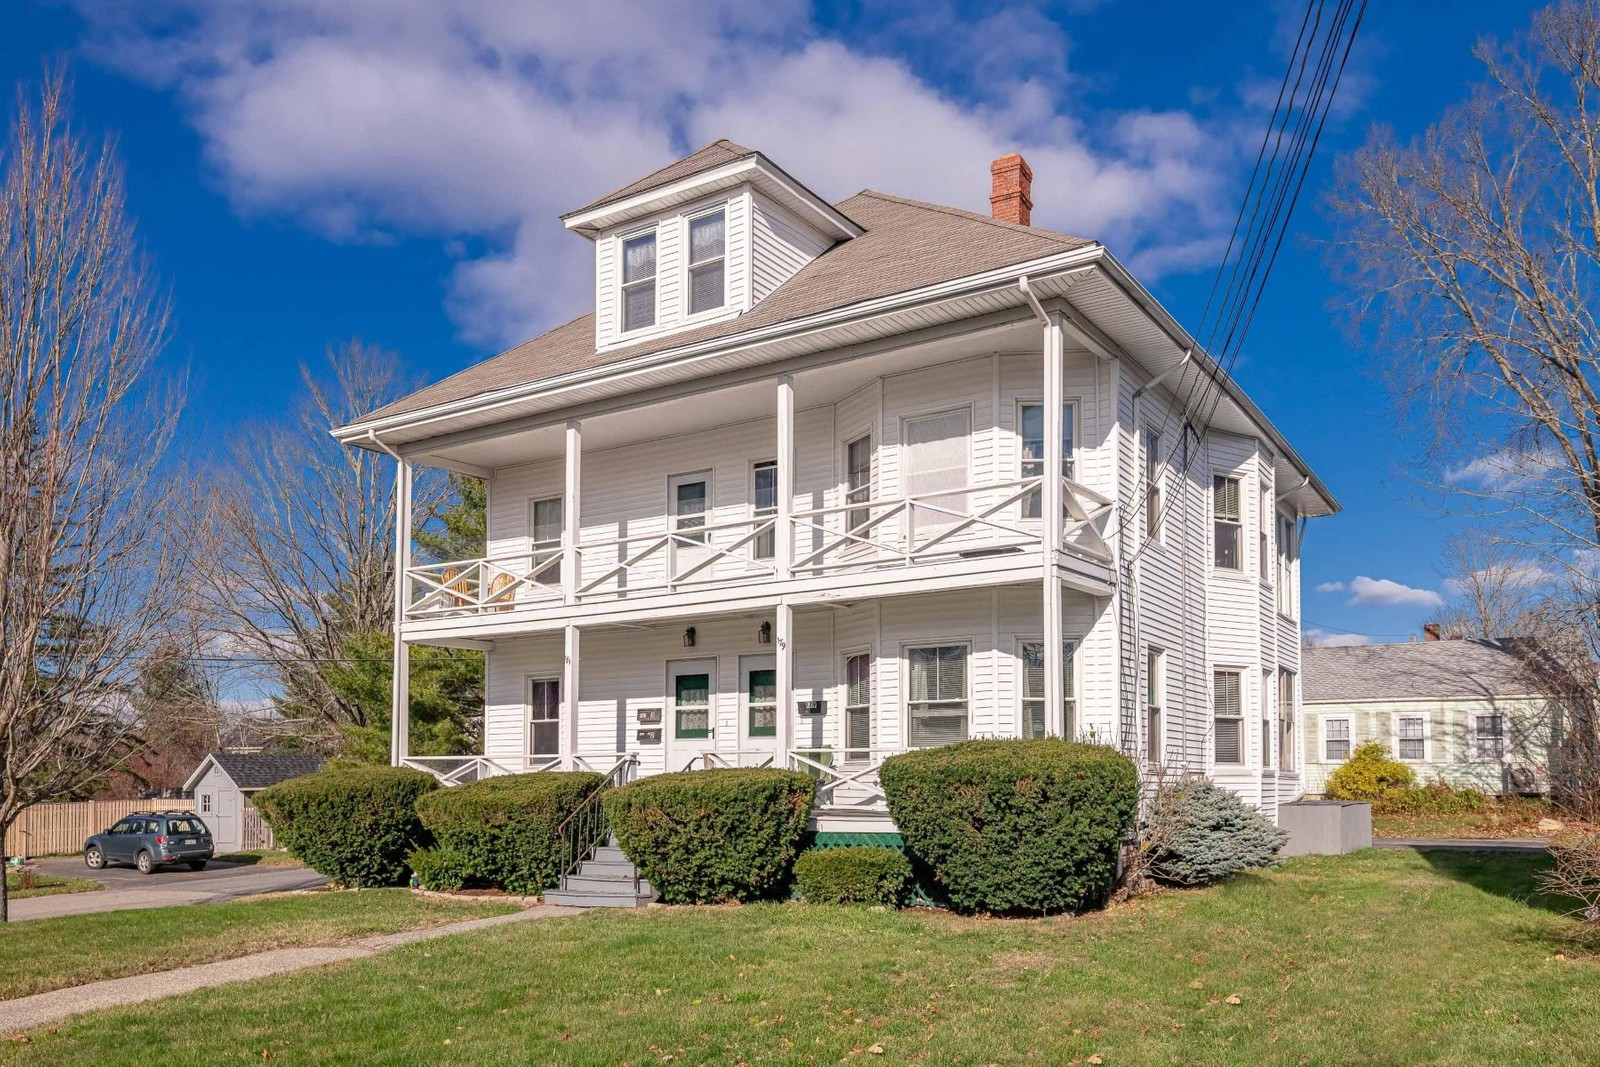 Multi-Family Homes for Sale at Portland, ME 04102